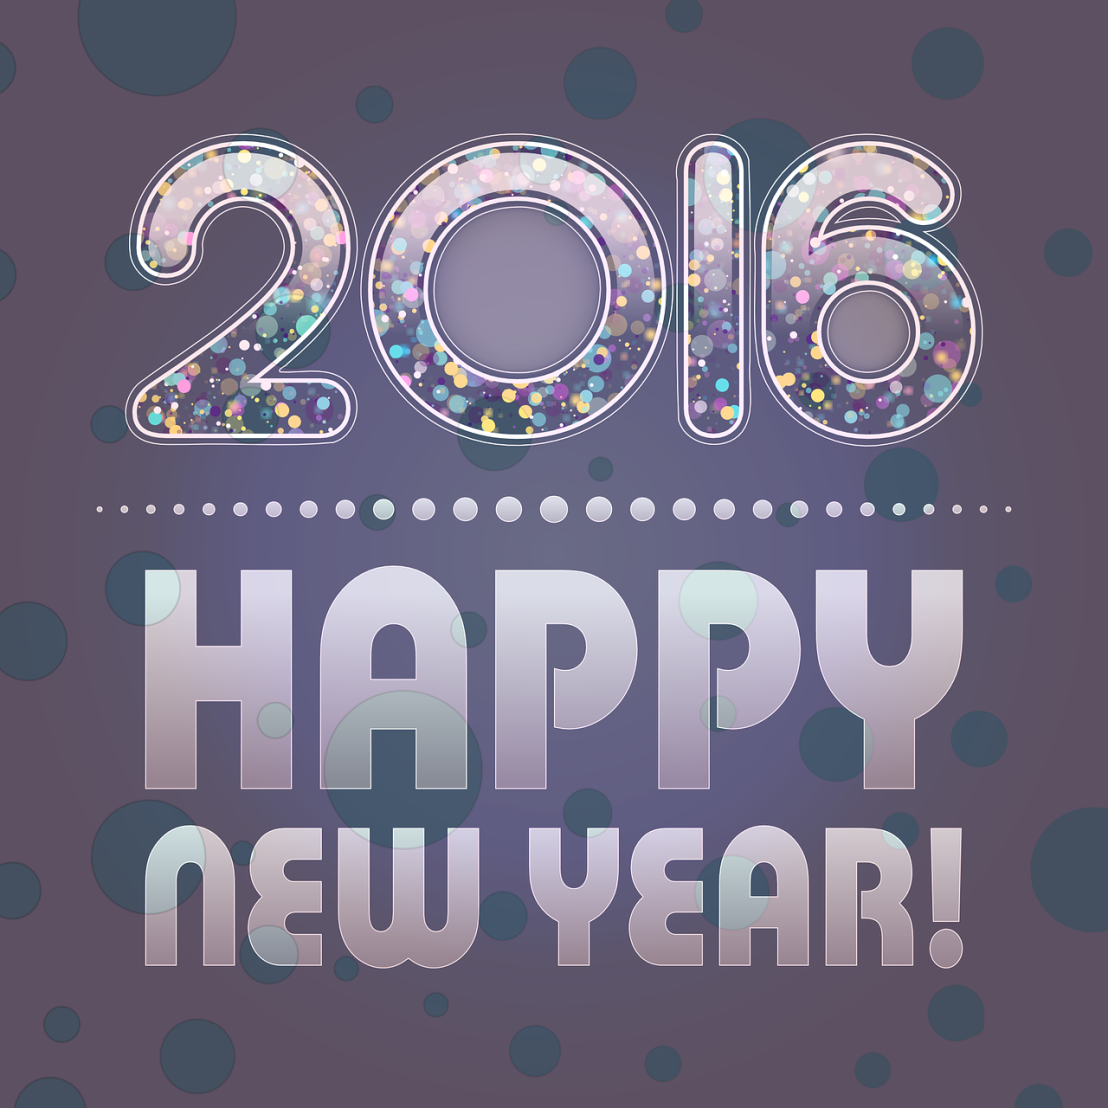 Thanks for 2015, have a fabulous year ahead!